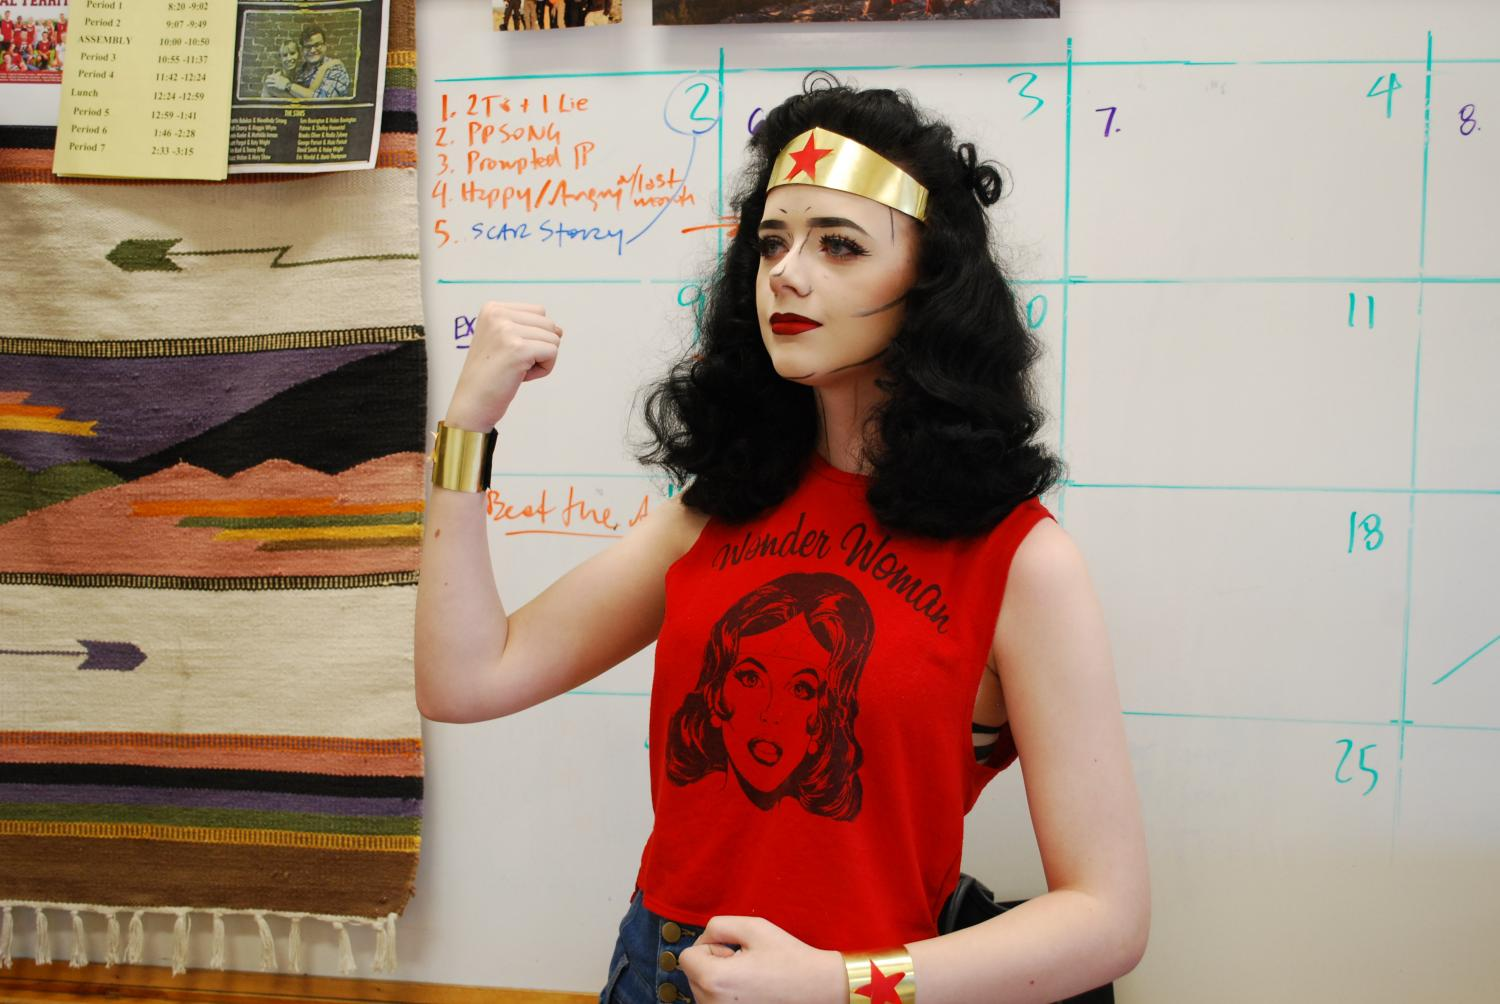 Junior, Corrina Asher portrays Wonder Woman with pop art make up